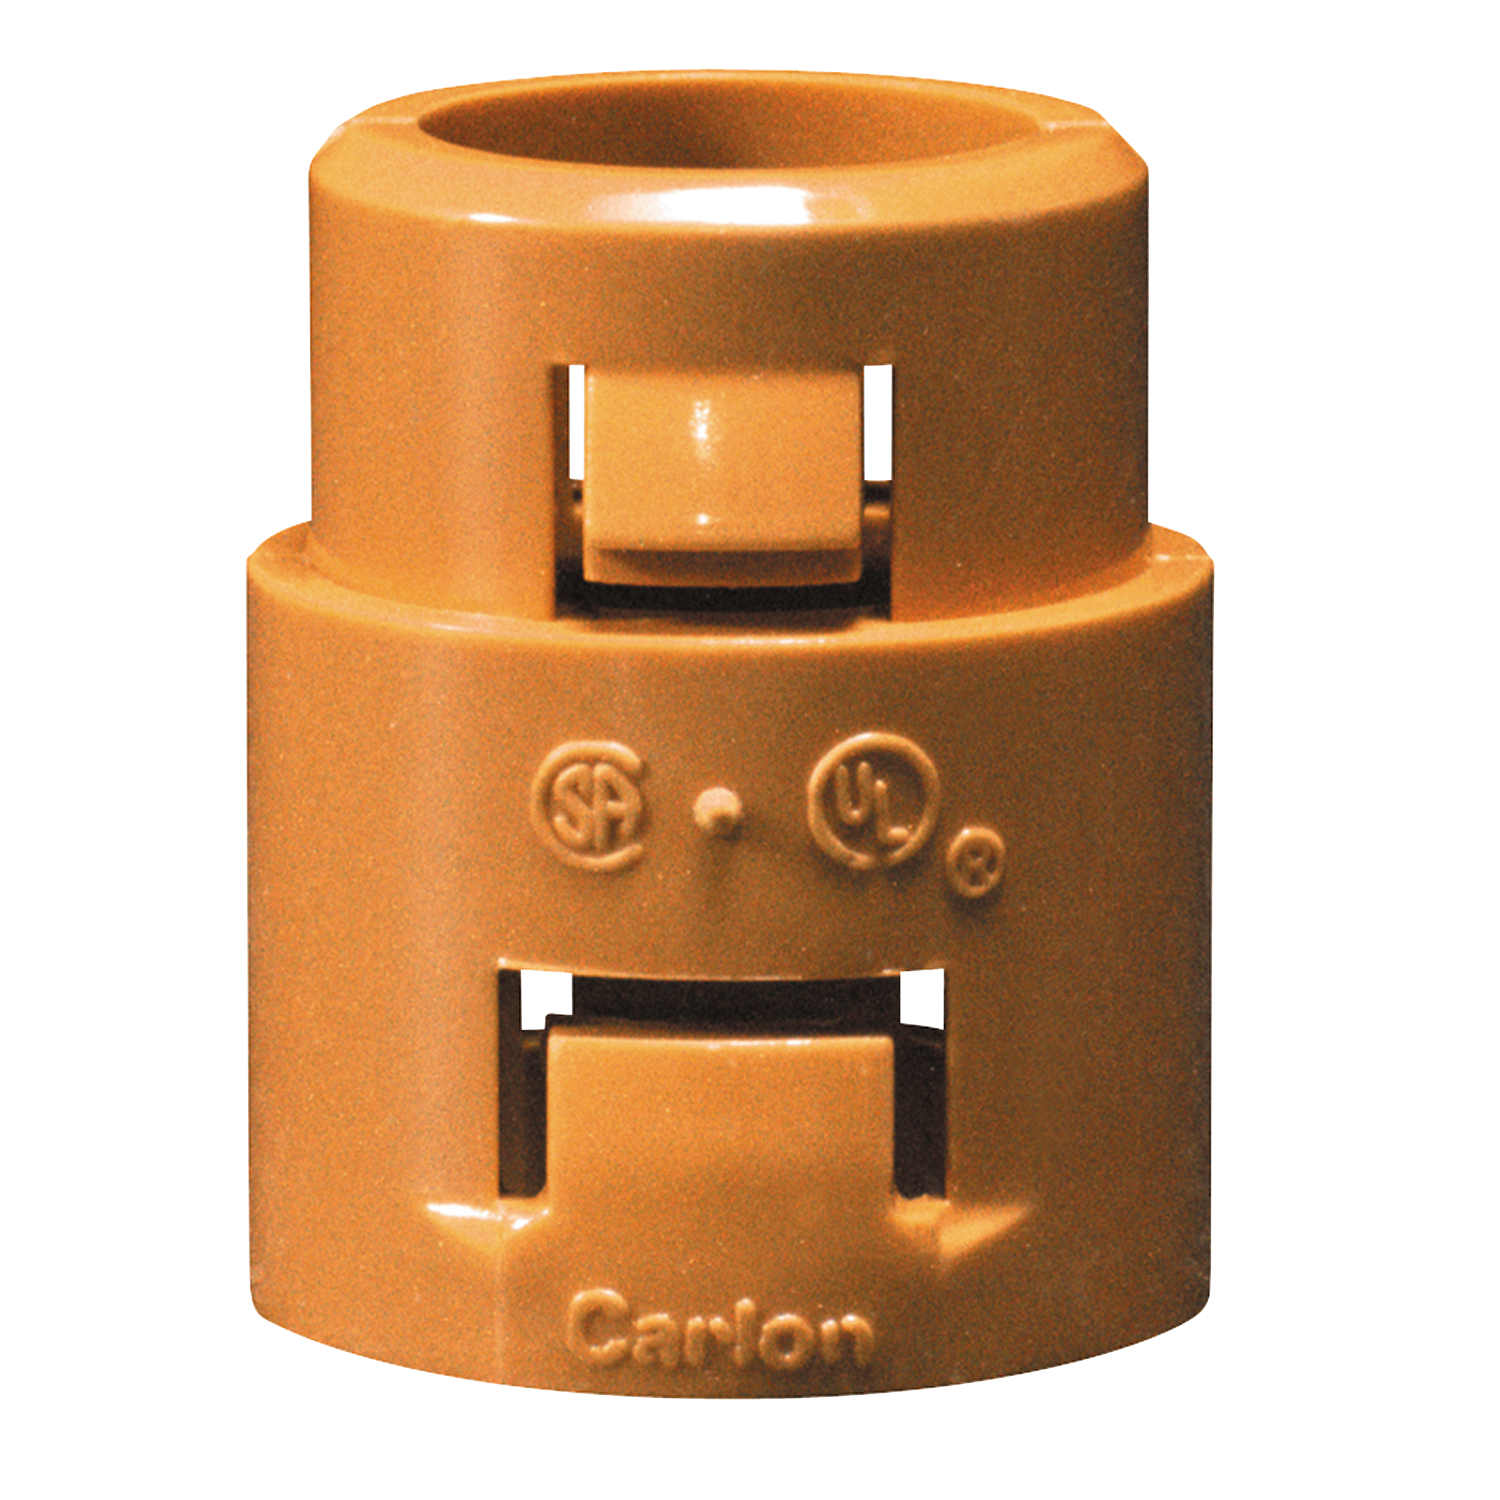 Carlon,SCA253F,Carlon® SCA253F Snap-In Adapter, 1 in, For Use With Riser-Gard™ and General Purpose Conduit, PVDF